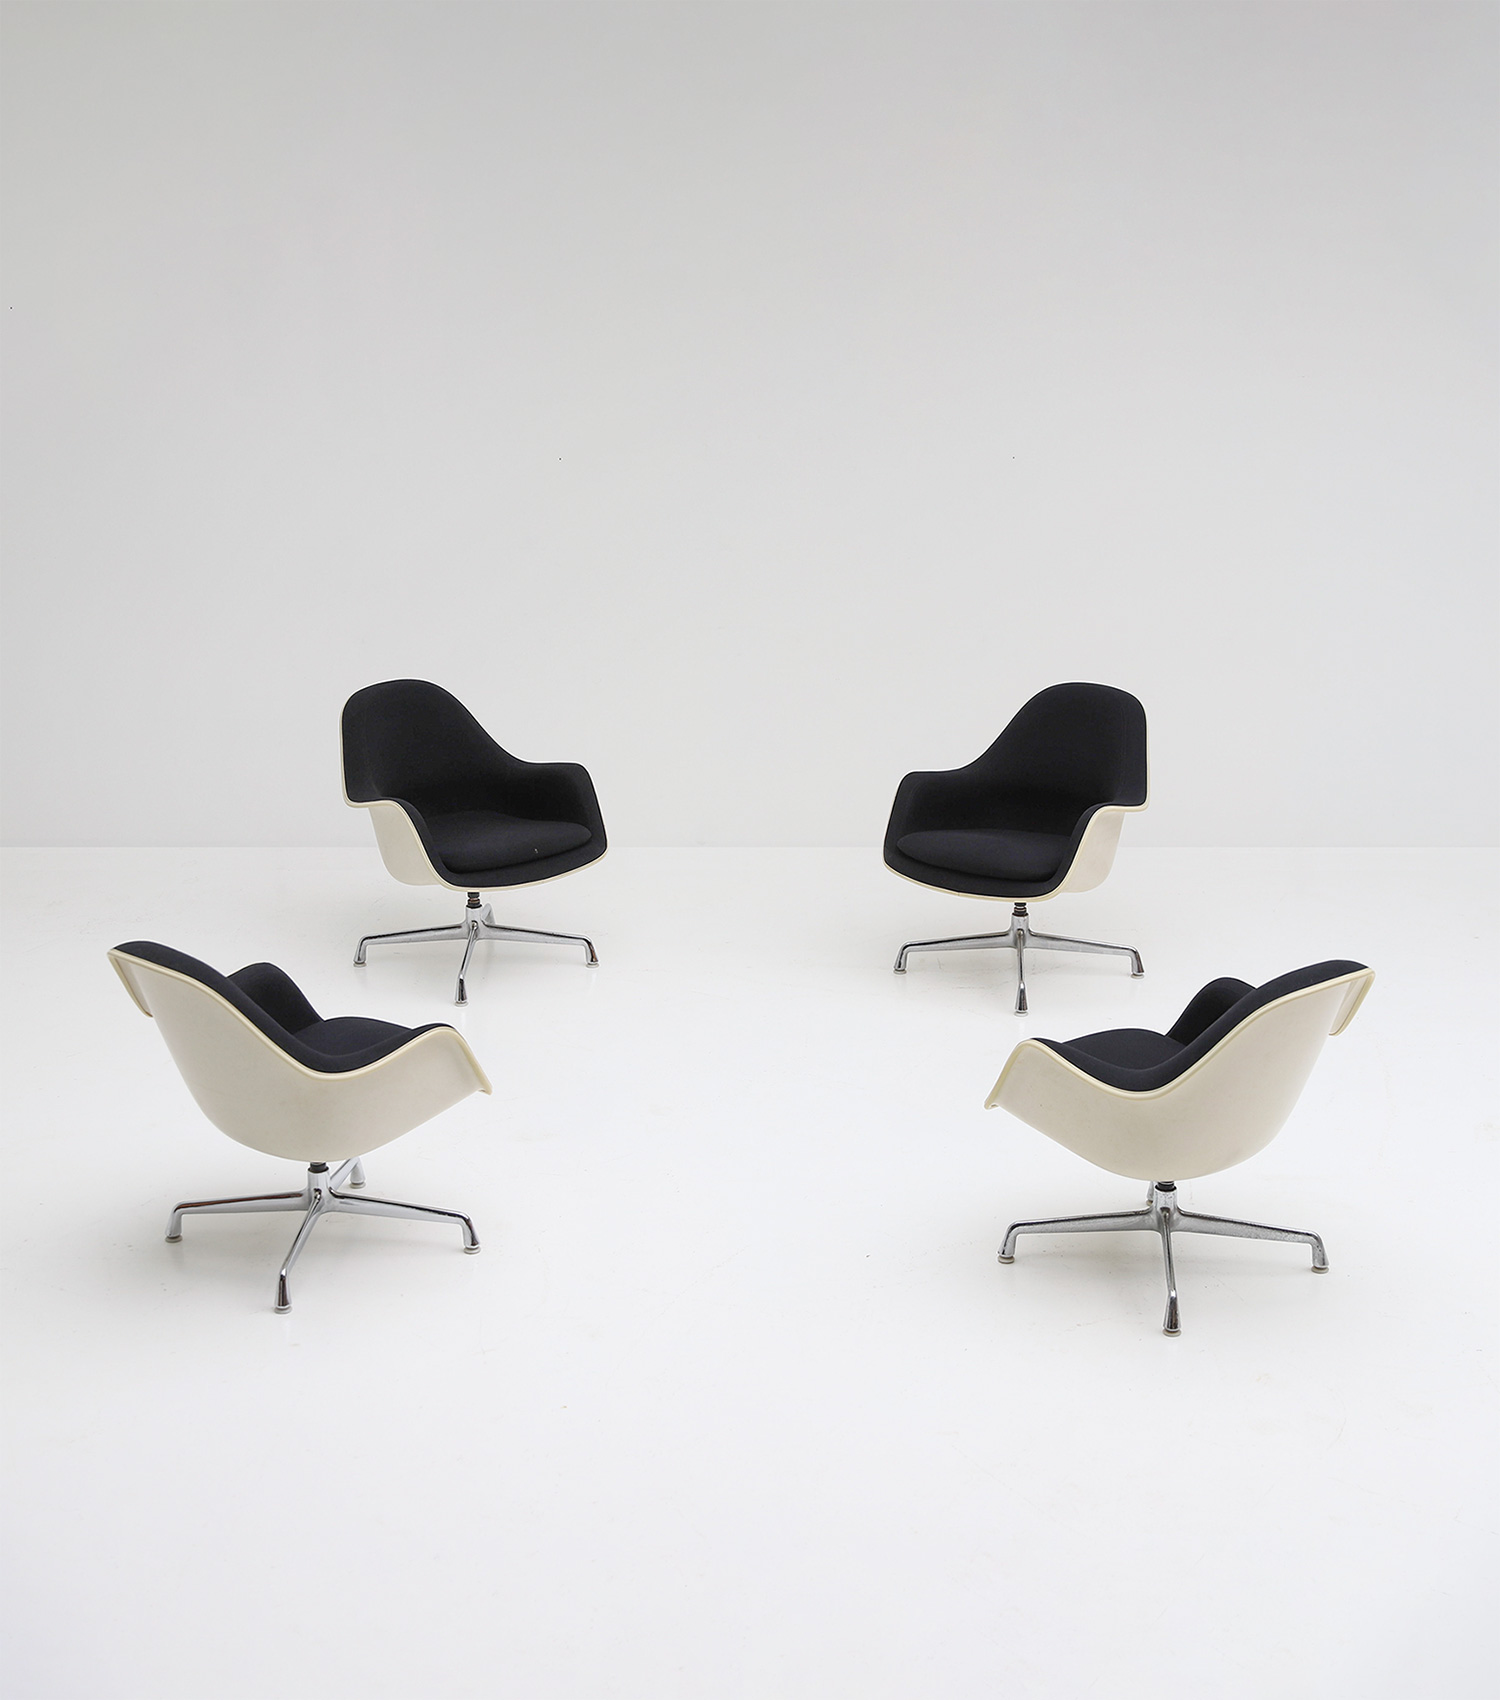 Charles and Ray Eames set of EC175-8 Chairs